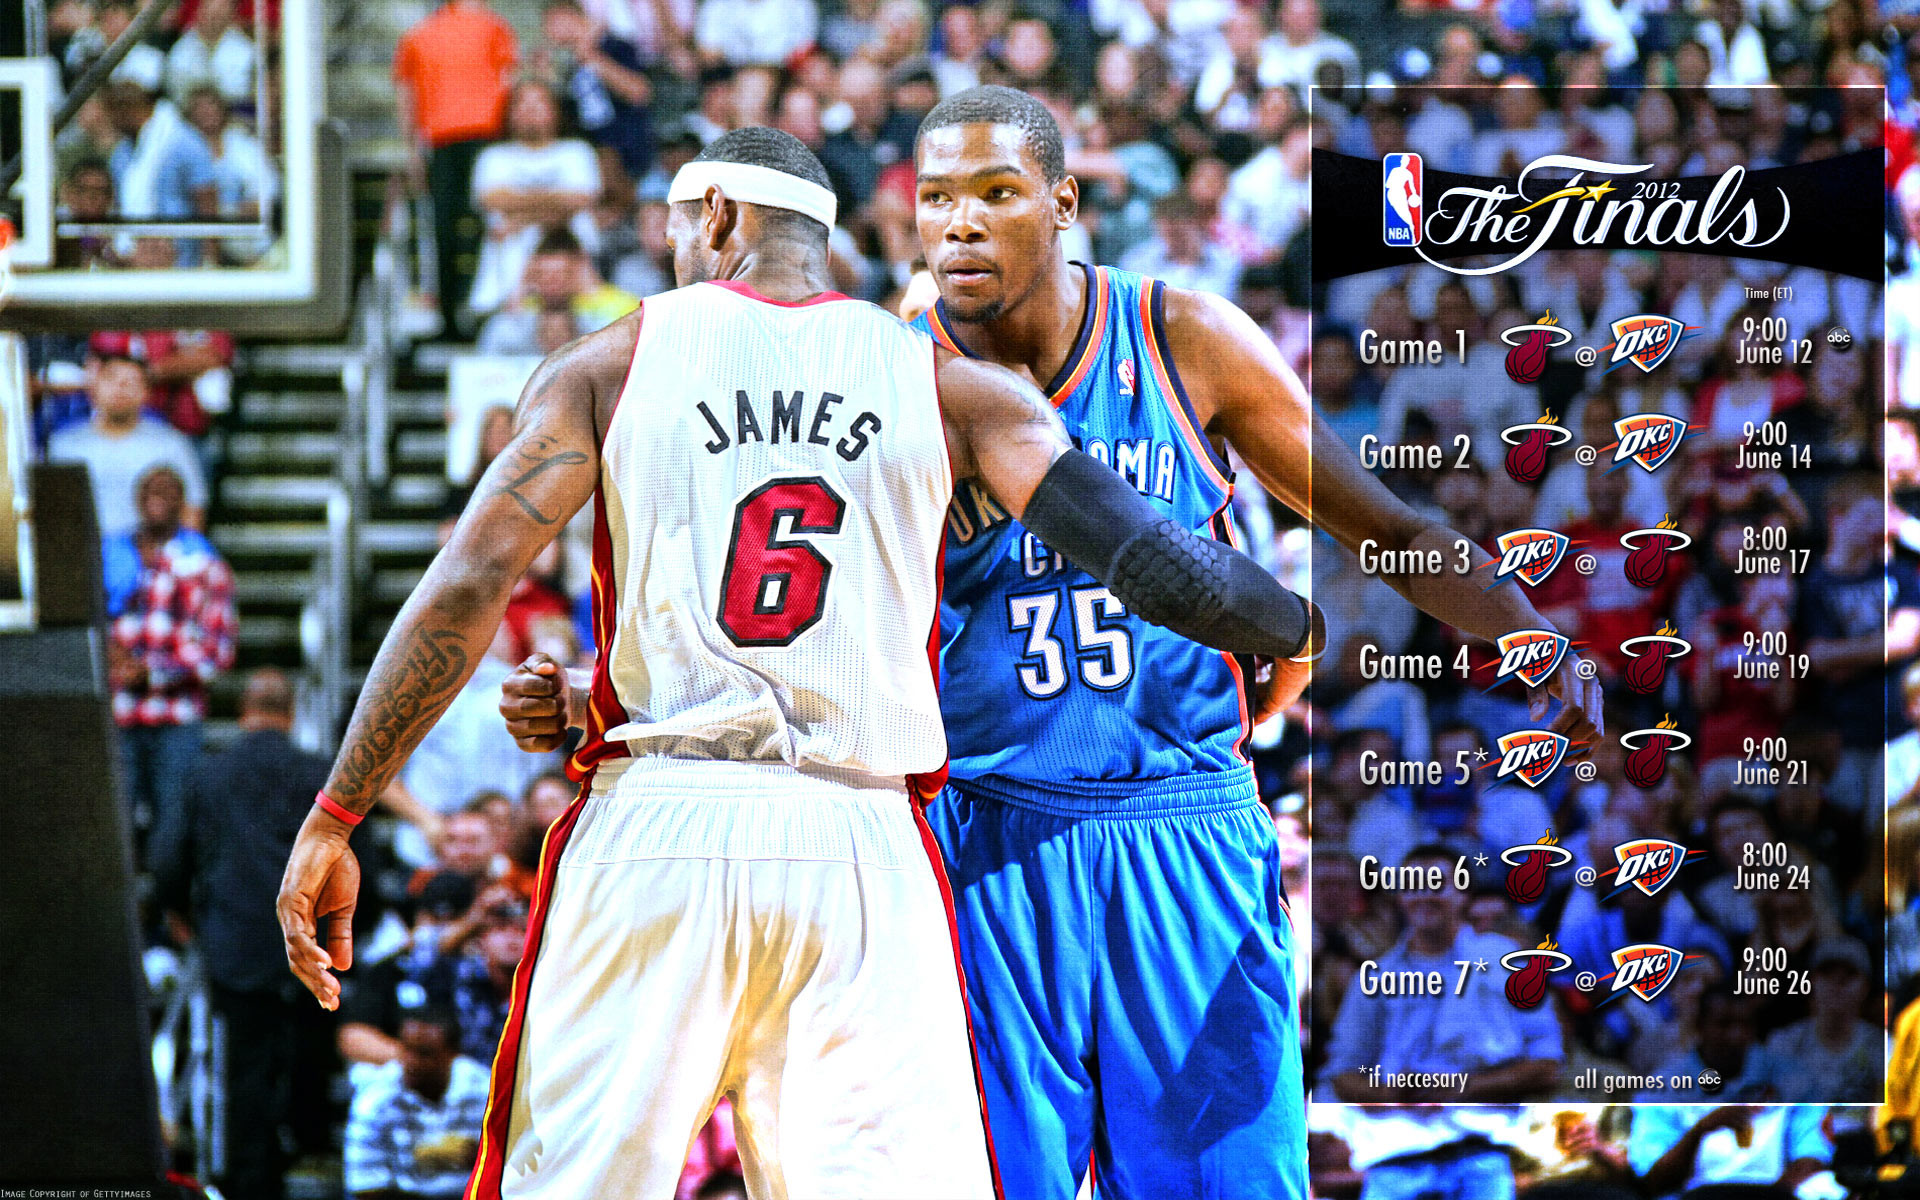 1920x1200 2012 NBA Finals Schedule 1920×1200 Wallpaper